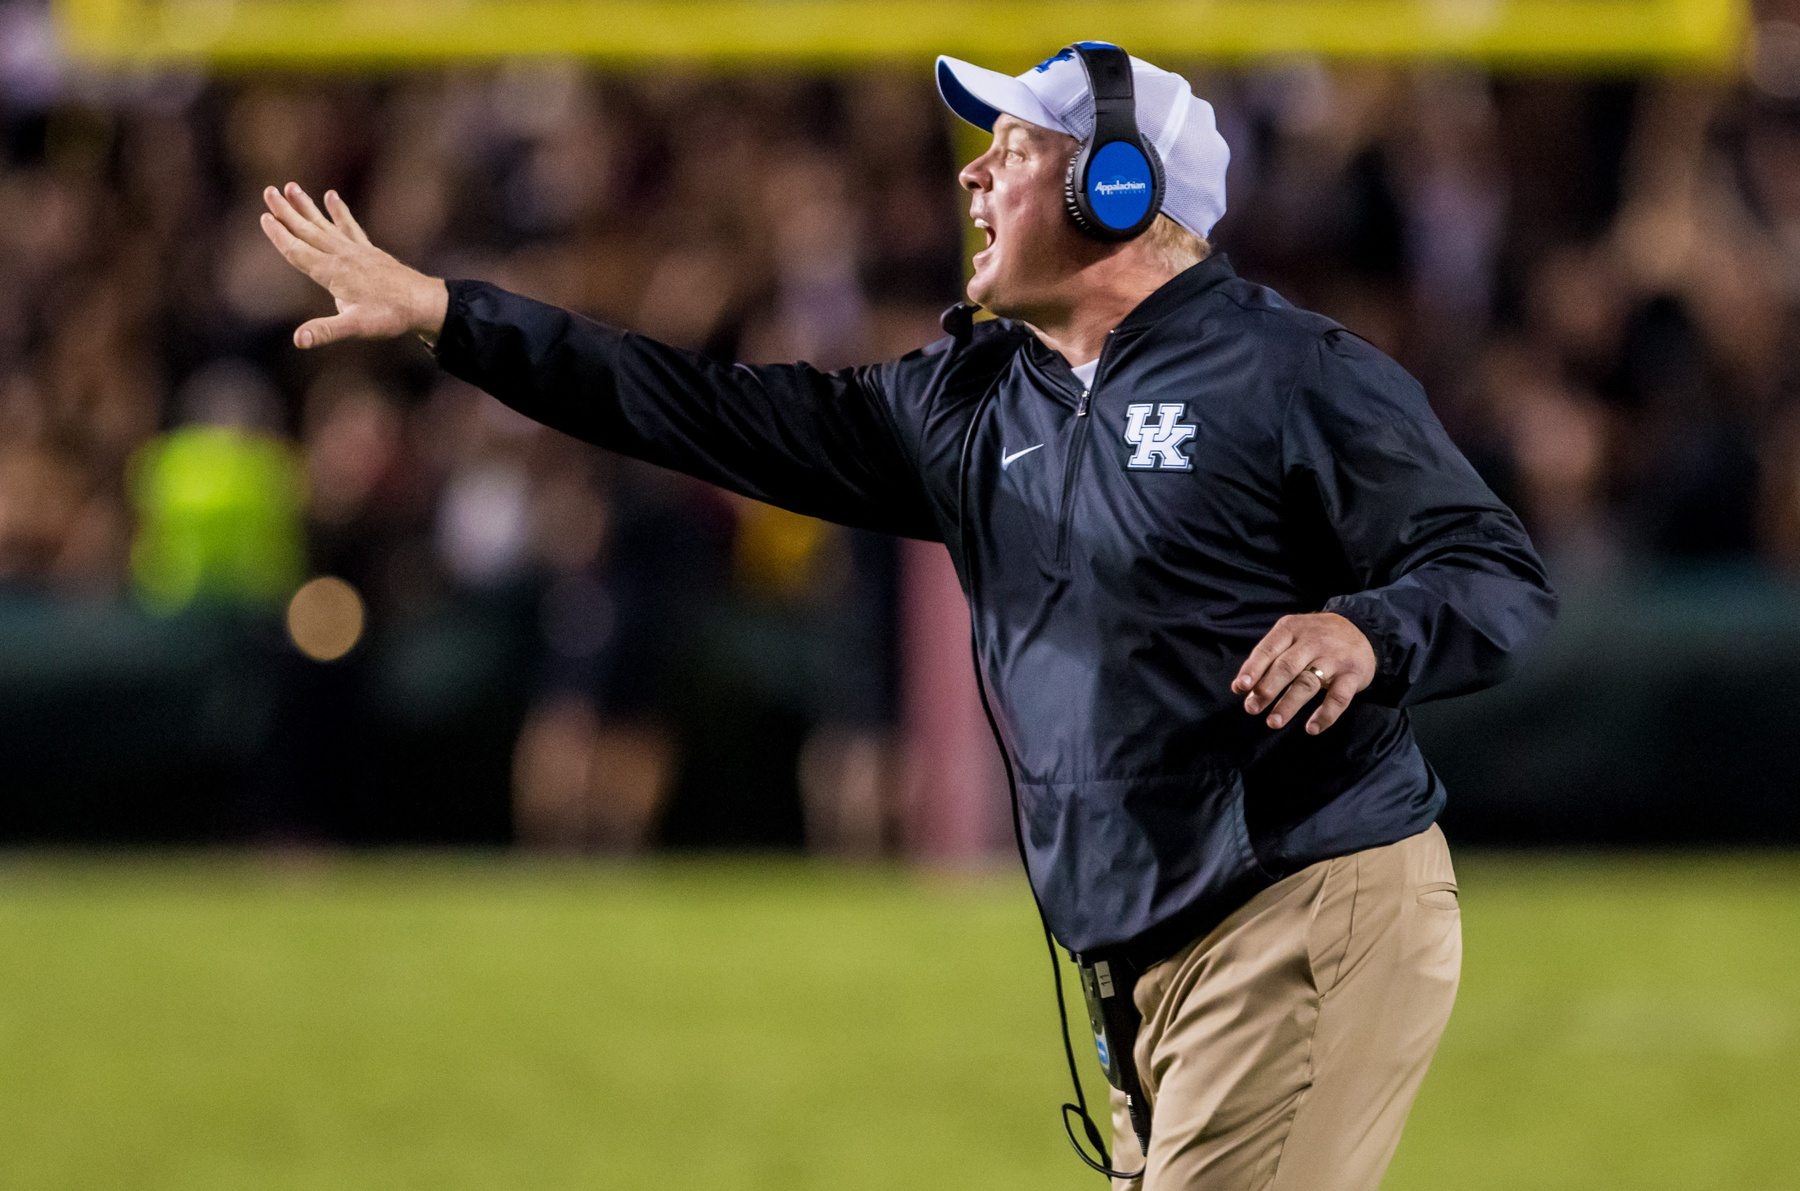 Kentucky looking to end 30-game losing streak to Florida this weekend